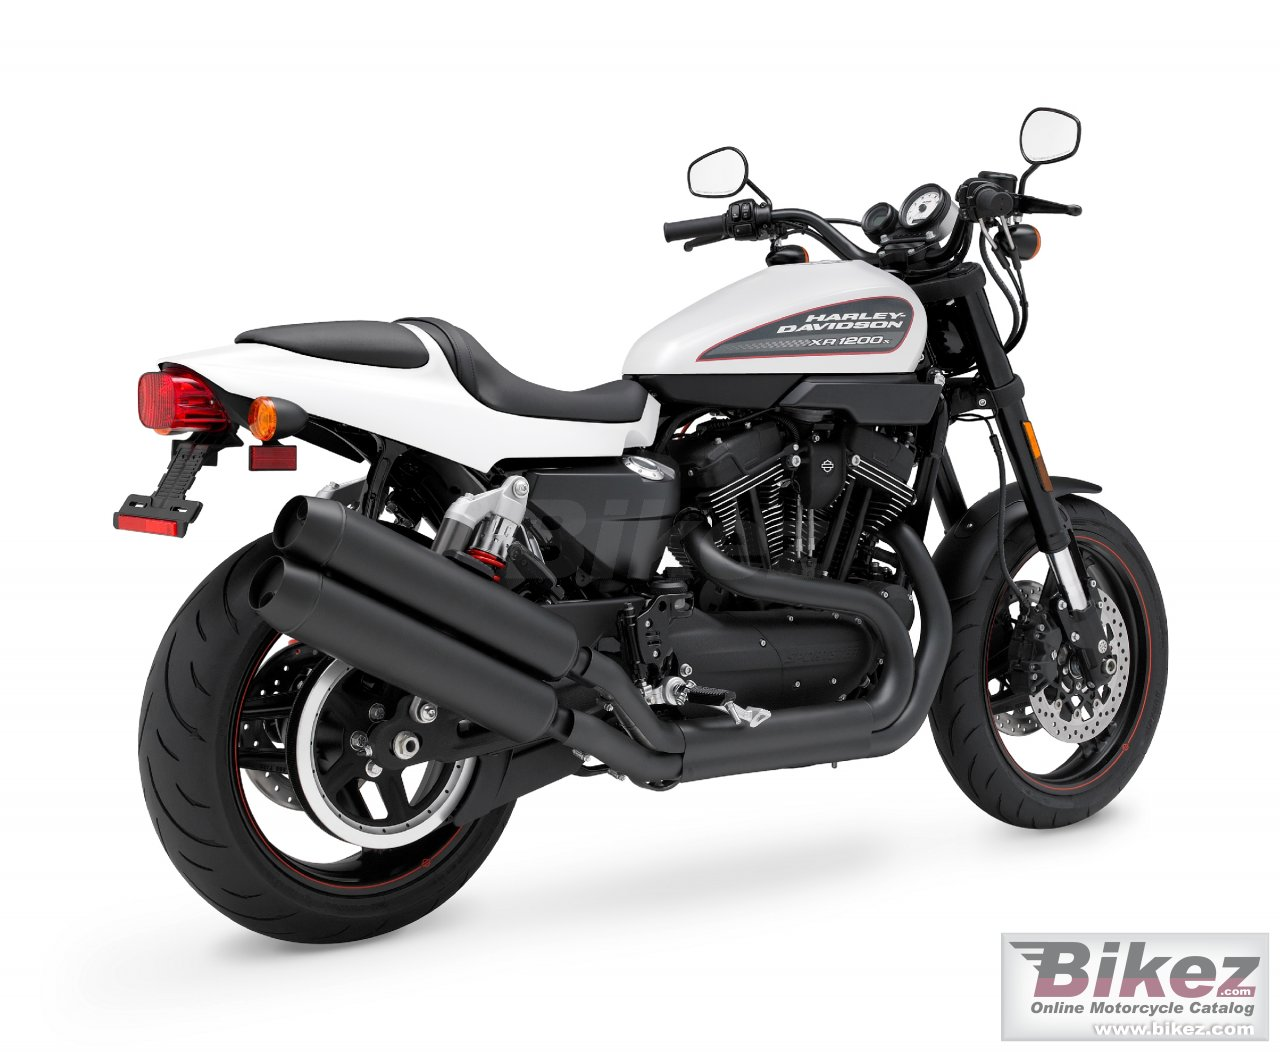 Big Harley-Davidson xr 1200x picture and wallpaper from Bikez.com